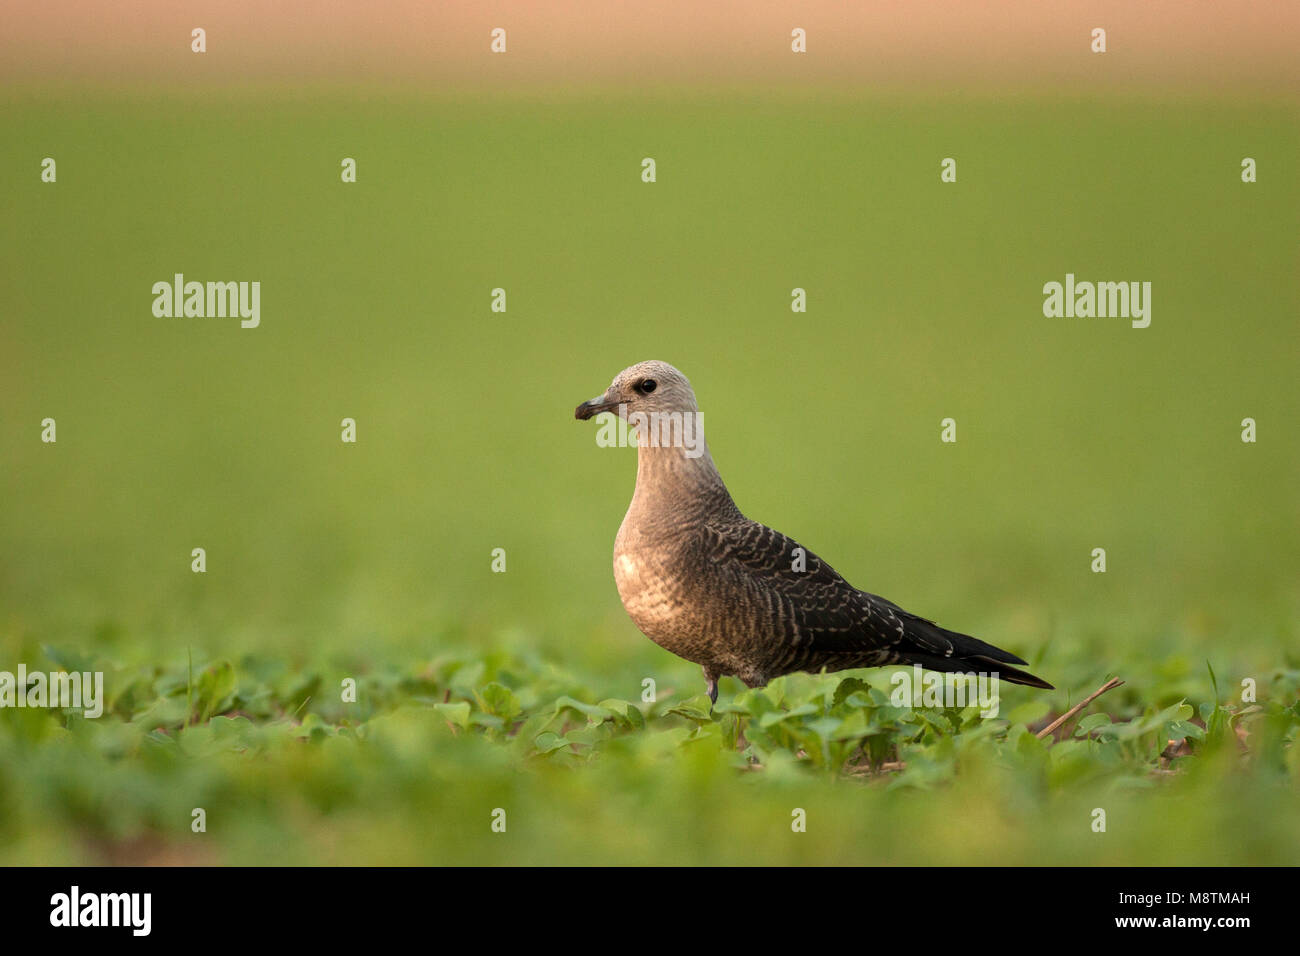 Kleinste Jager zittend in veld; Long-tailed Skua perched in field - Stock Image